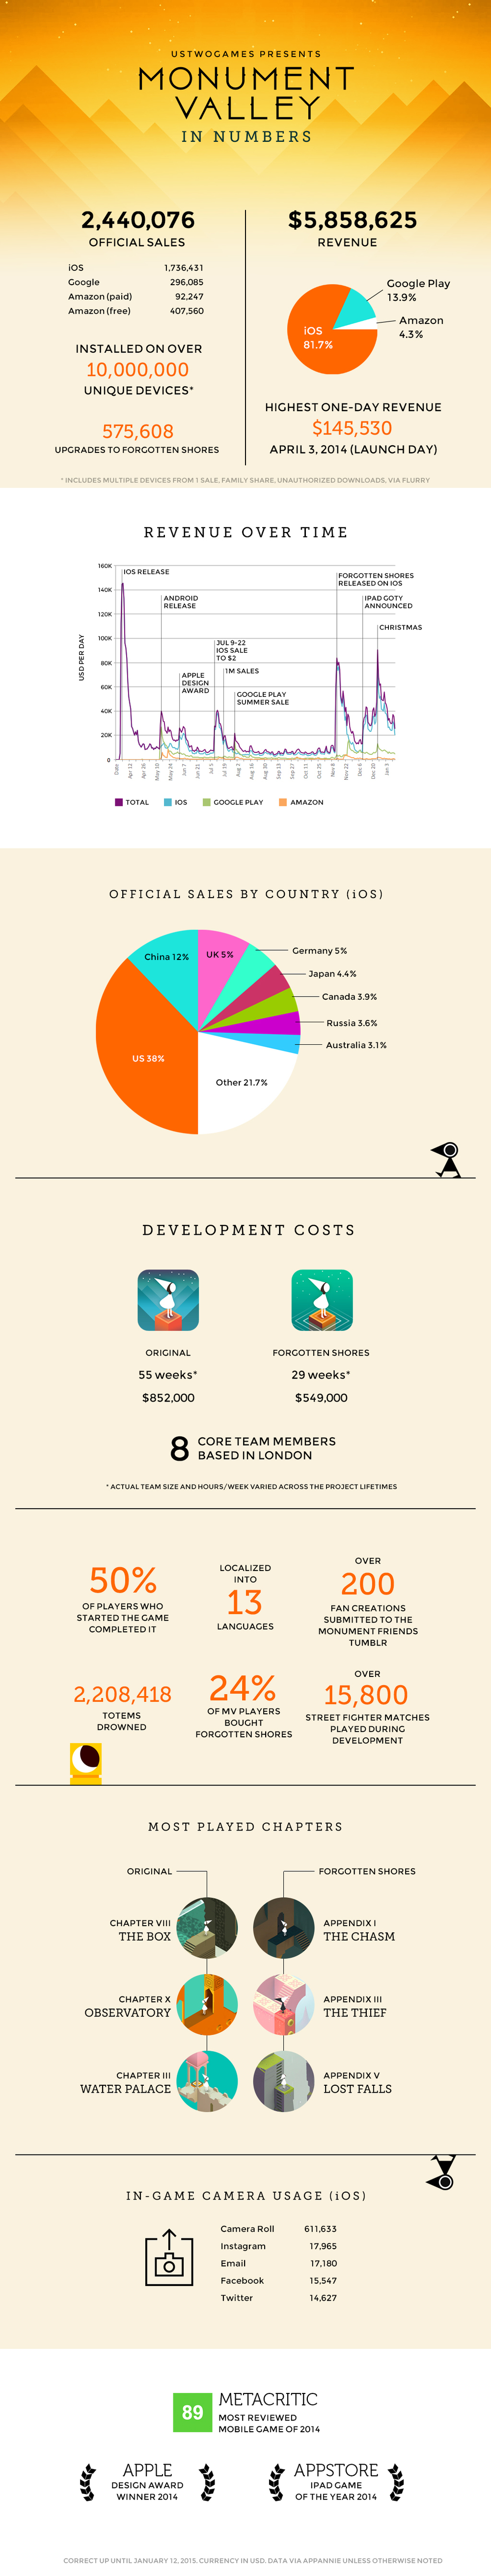 Monument Valley in Numbers